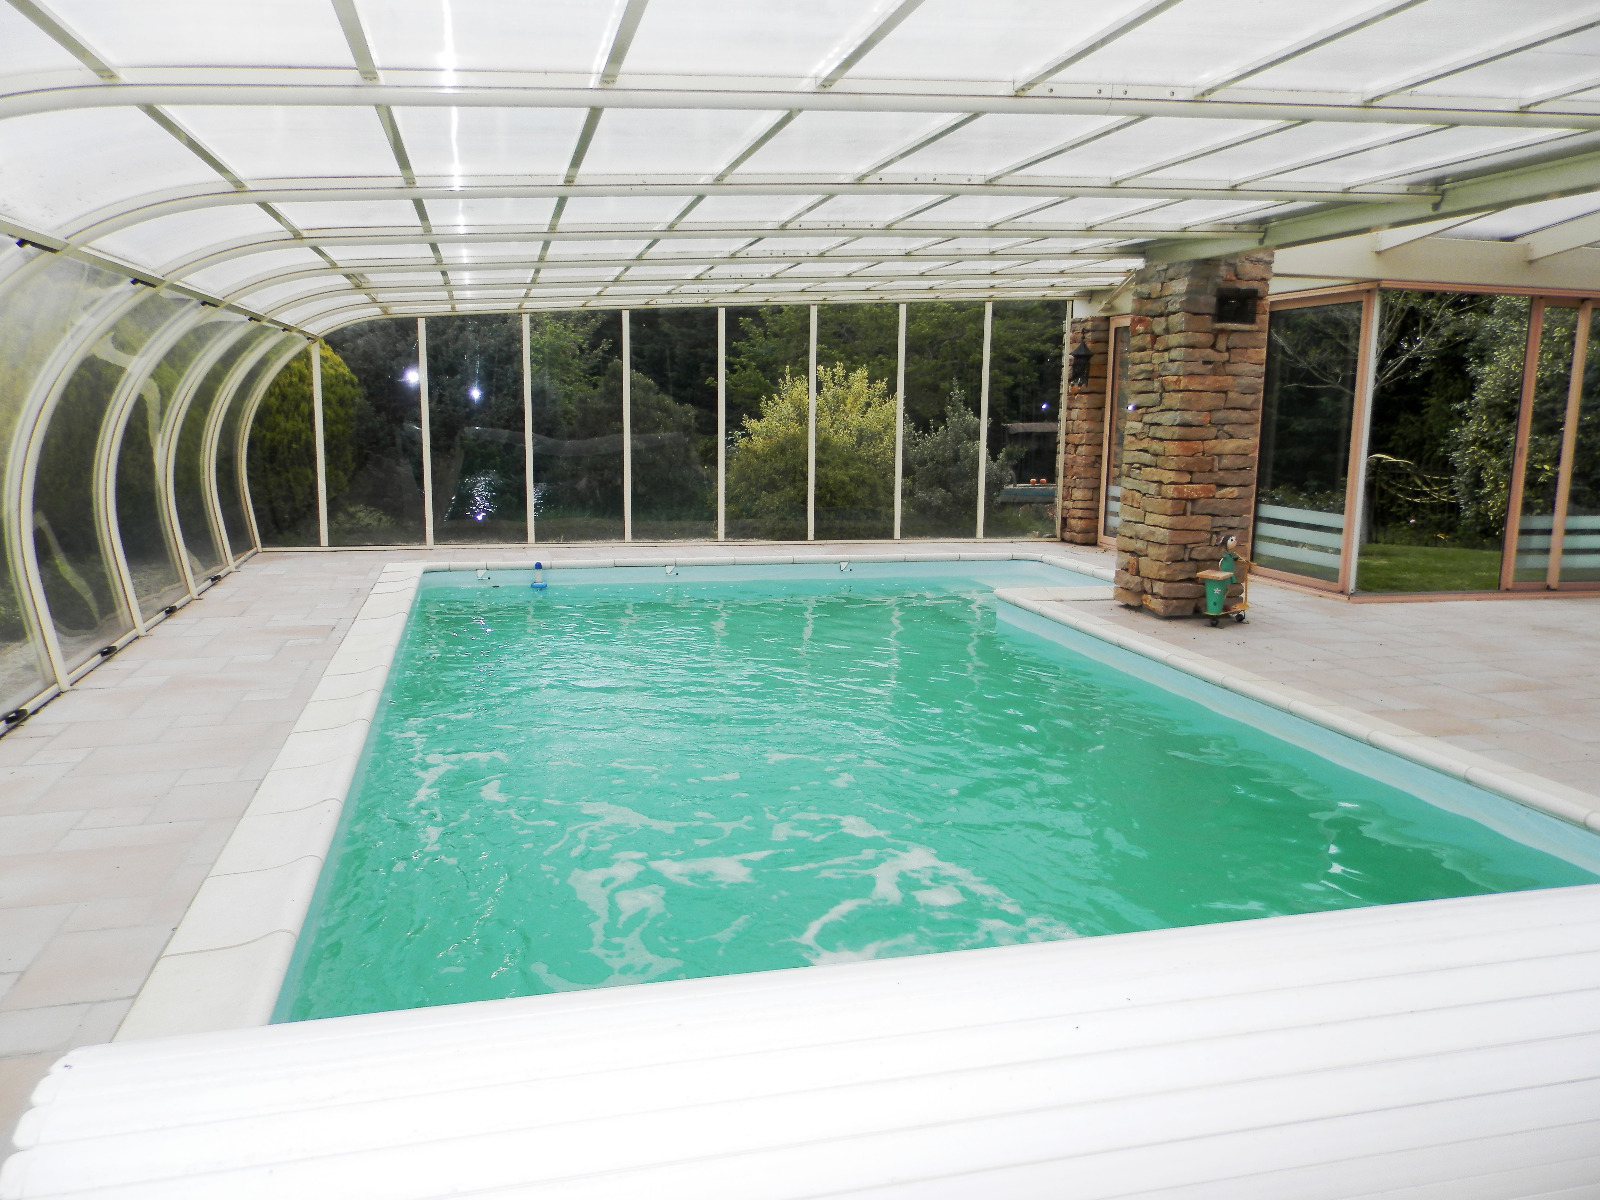 Vente louhans 71 r sidence 177 m 7 pi ces 3 chambres for Residence piscine couverte